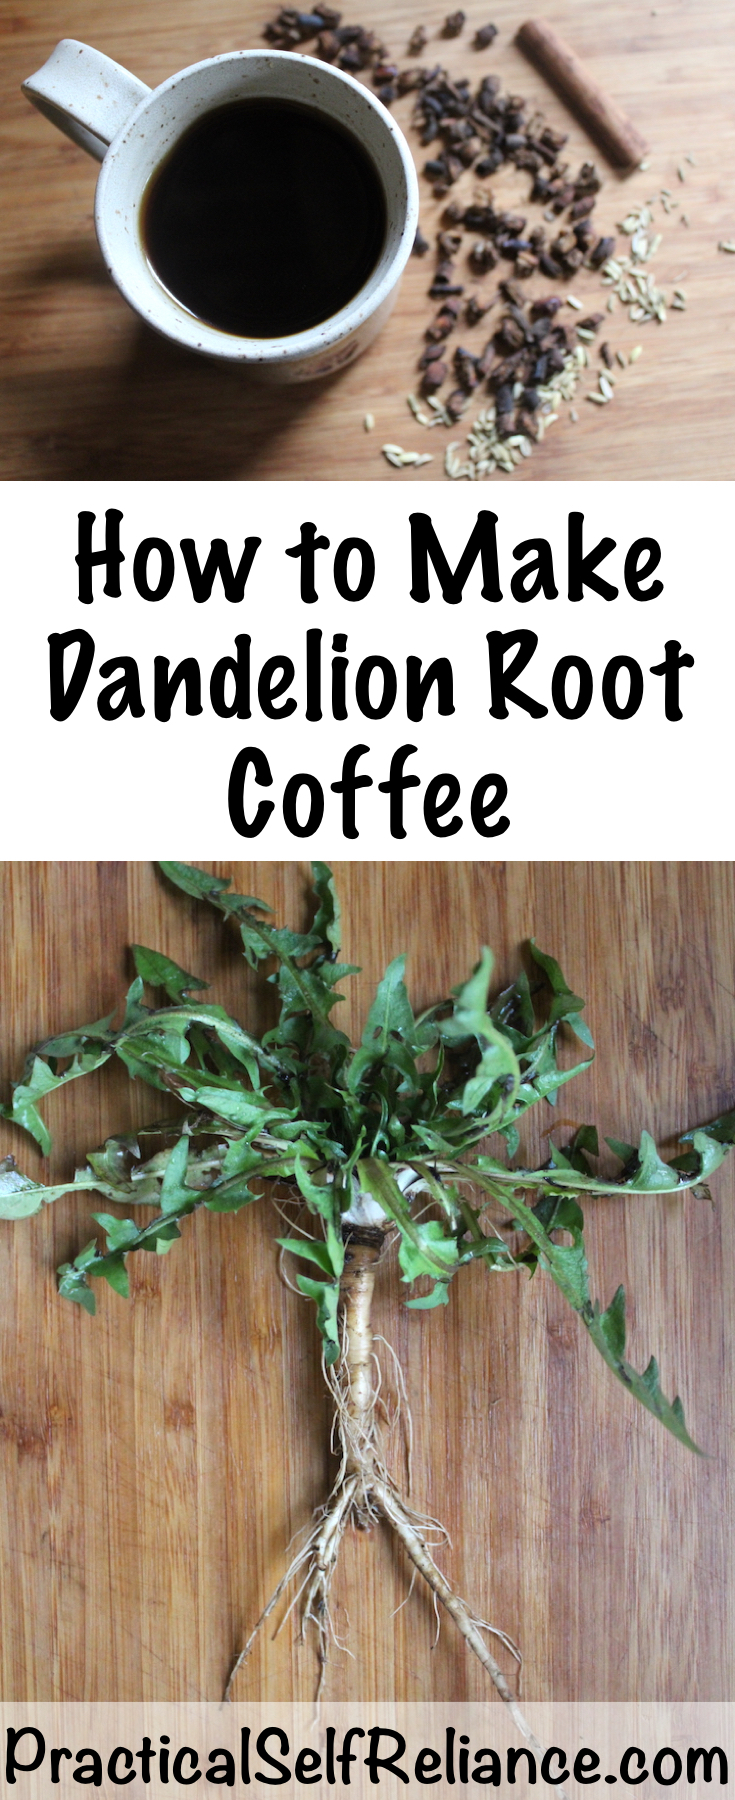 Roasted Dandelion Root Coffee with fennel and cinnamon